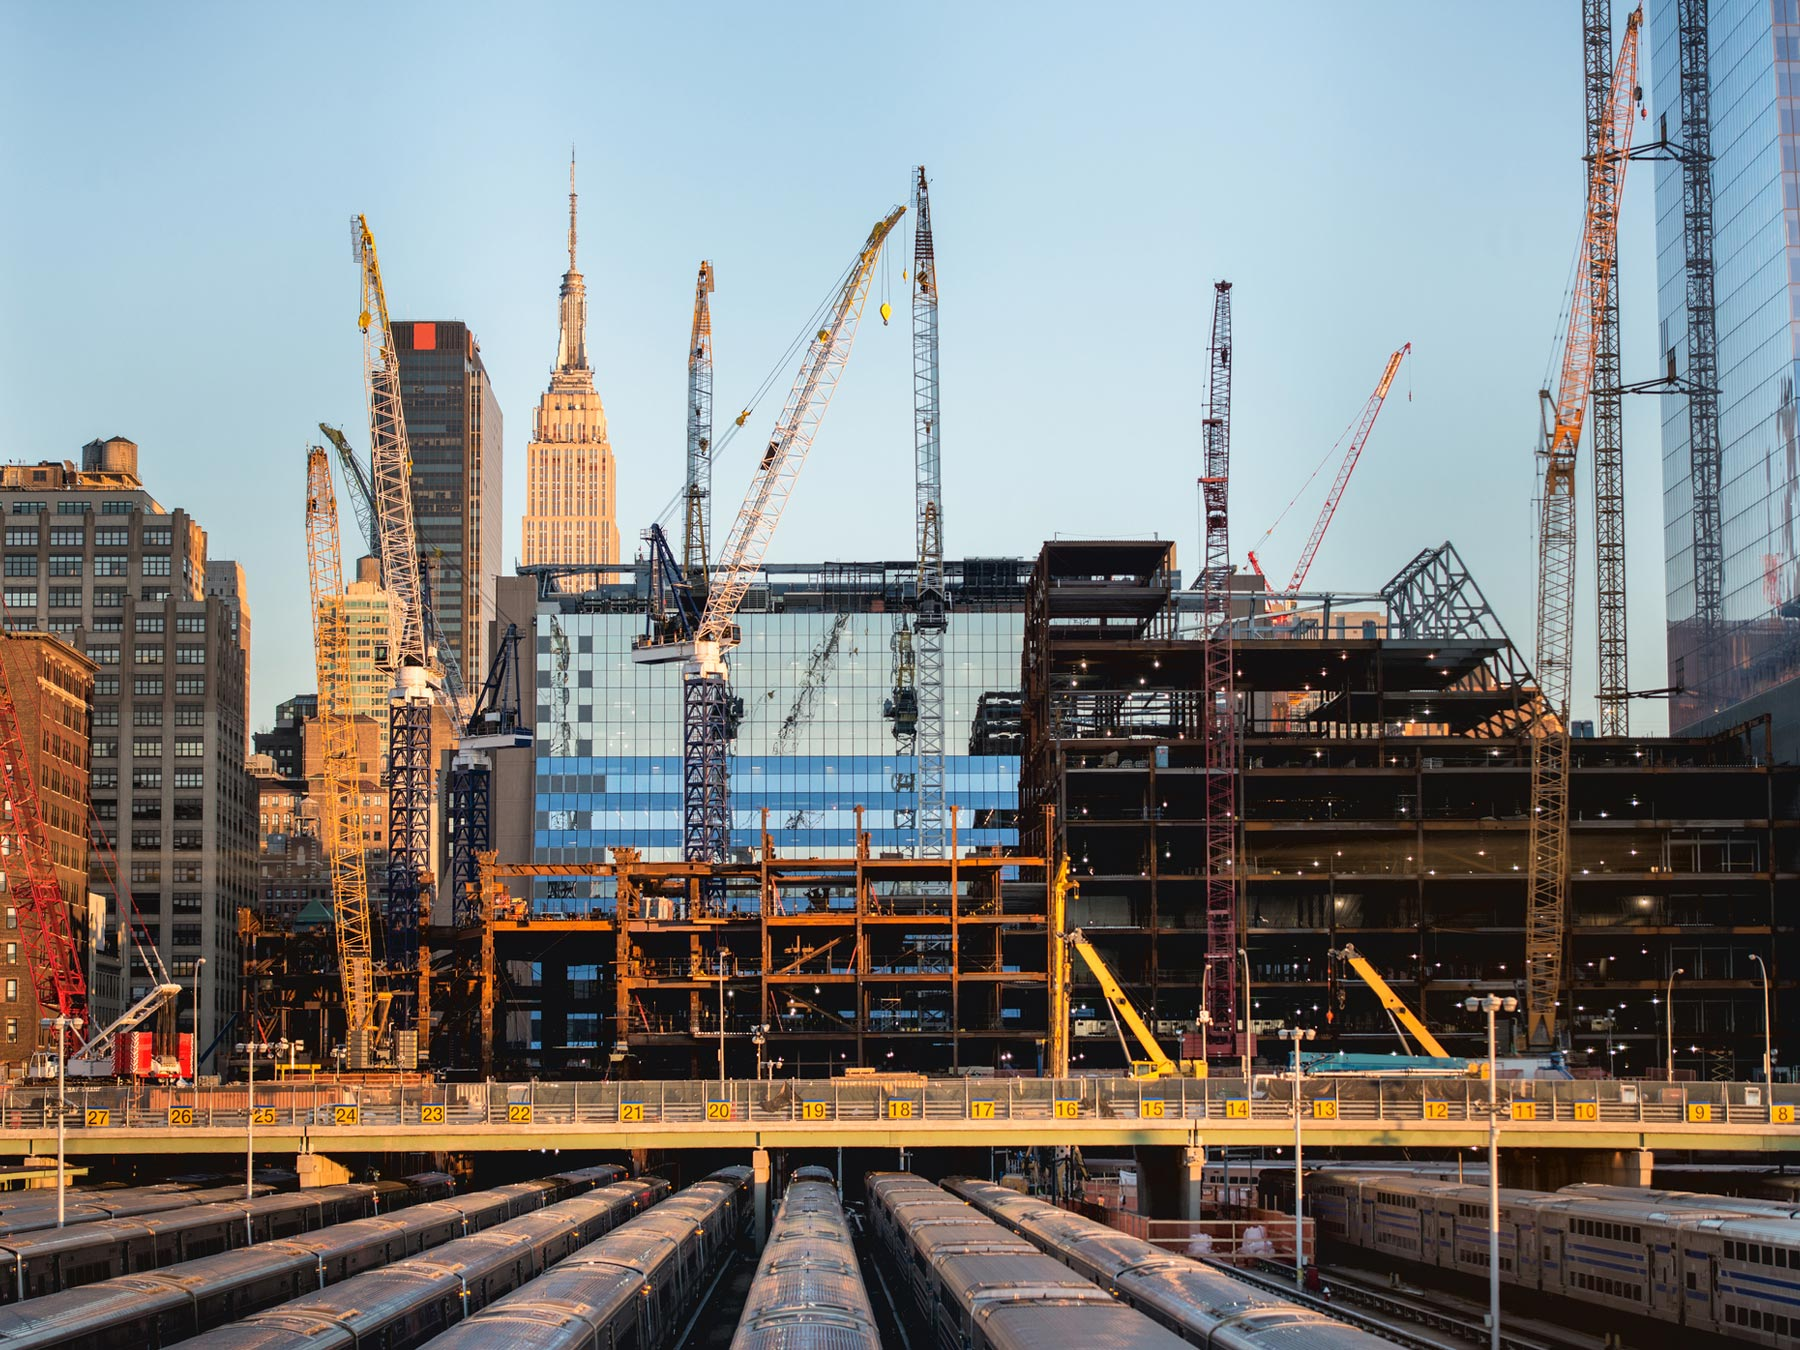 Commercial Construction Cost Per Square Foot in the U.S.